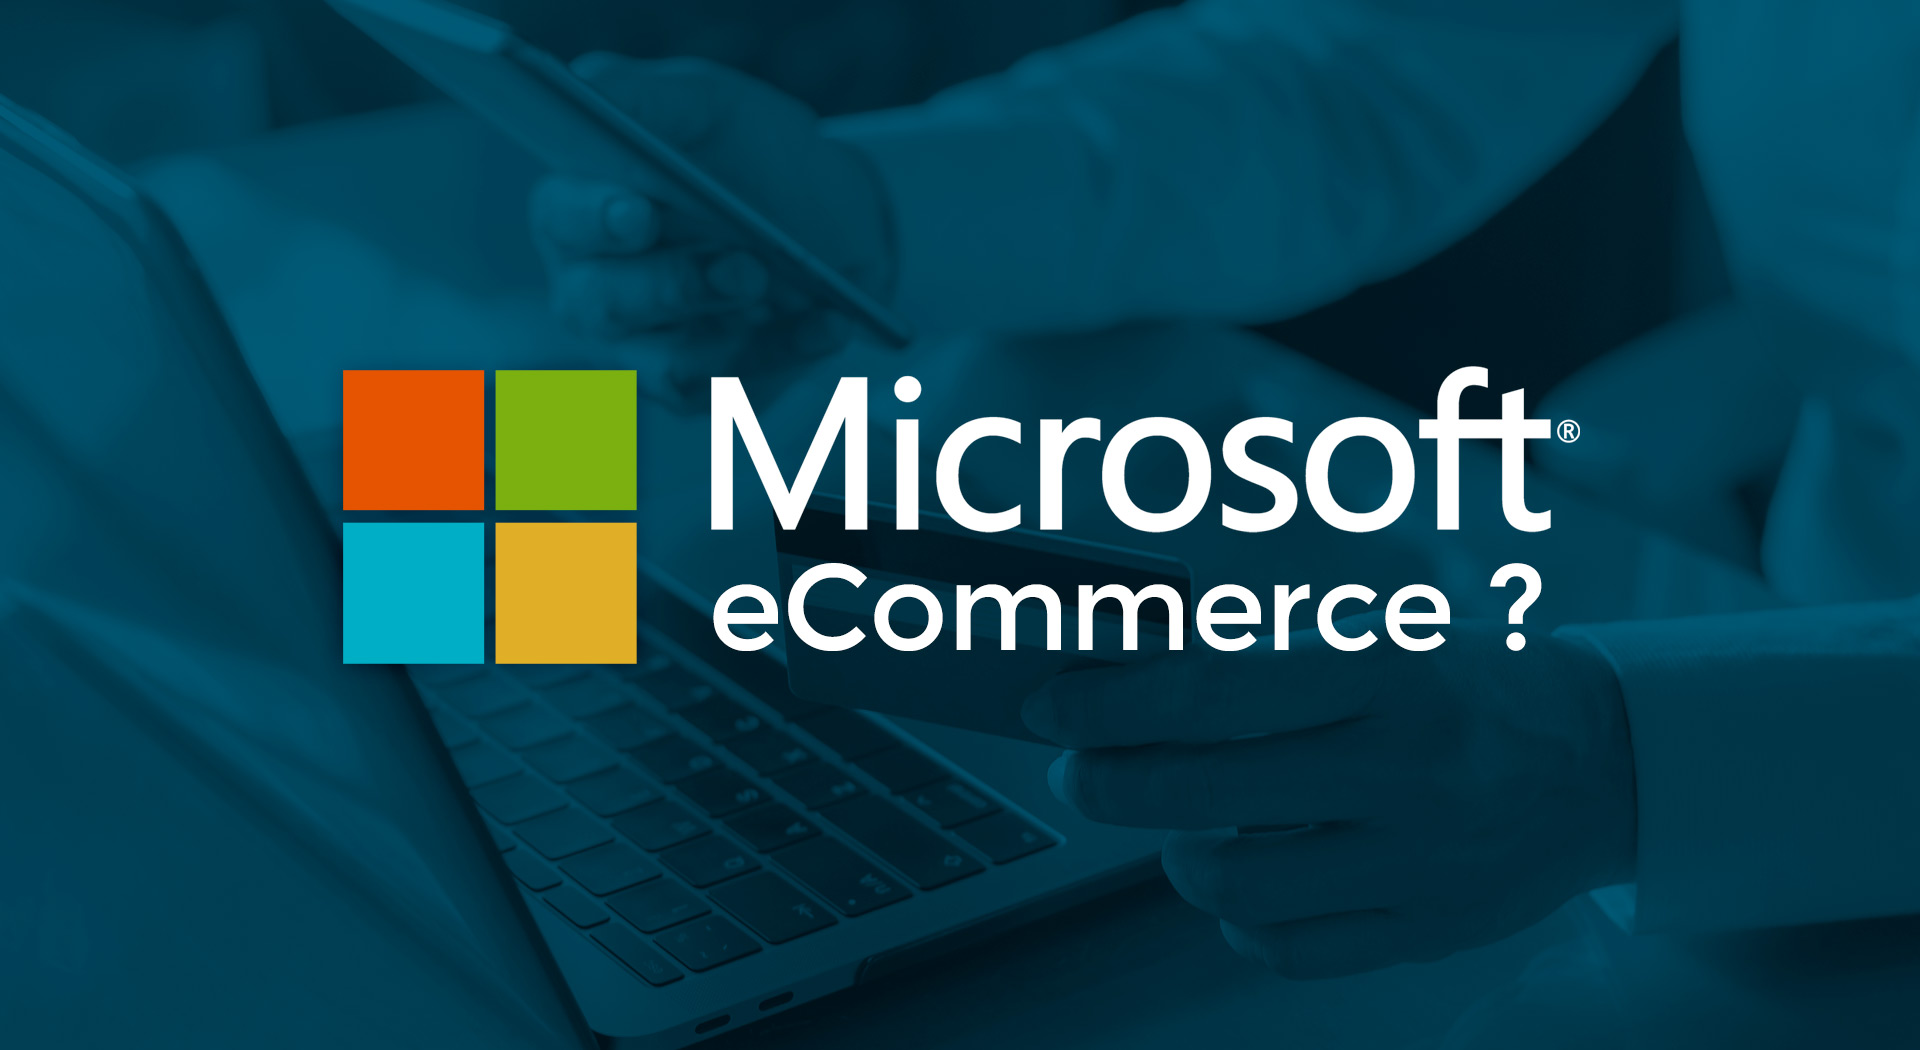 microsoft-ecommerce-onepoint-software-solutions